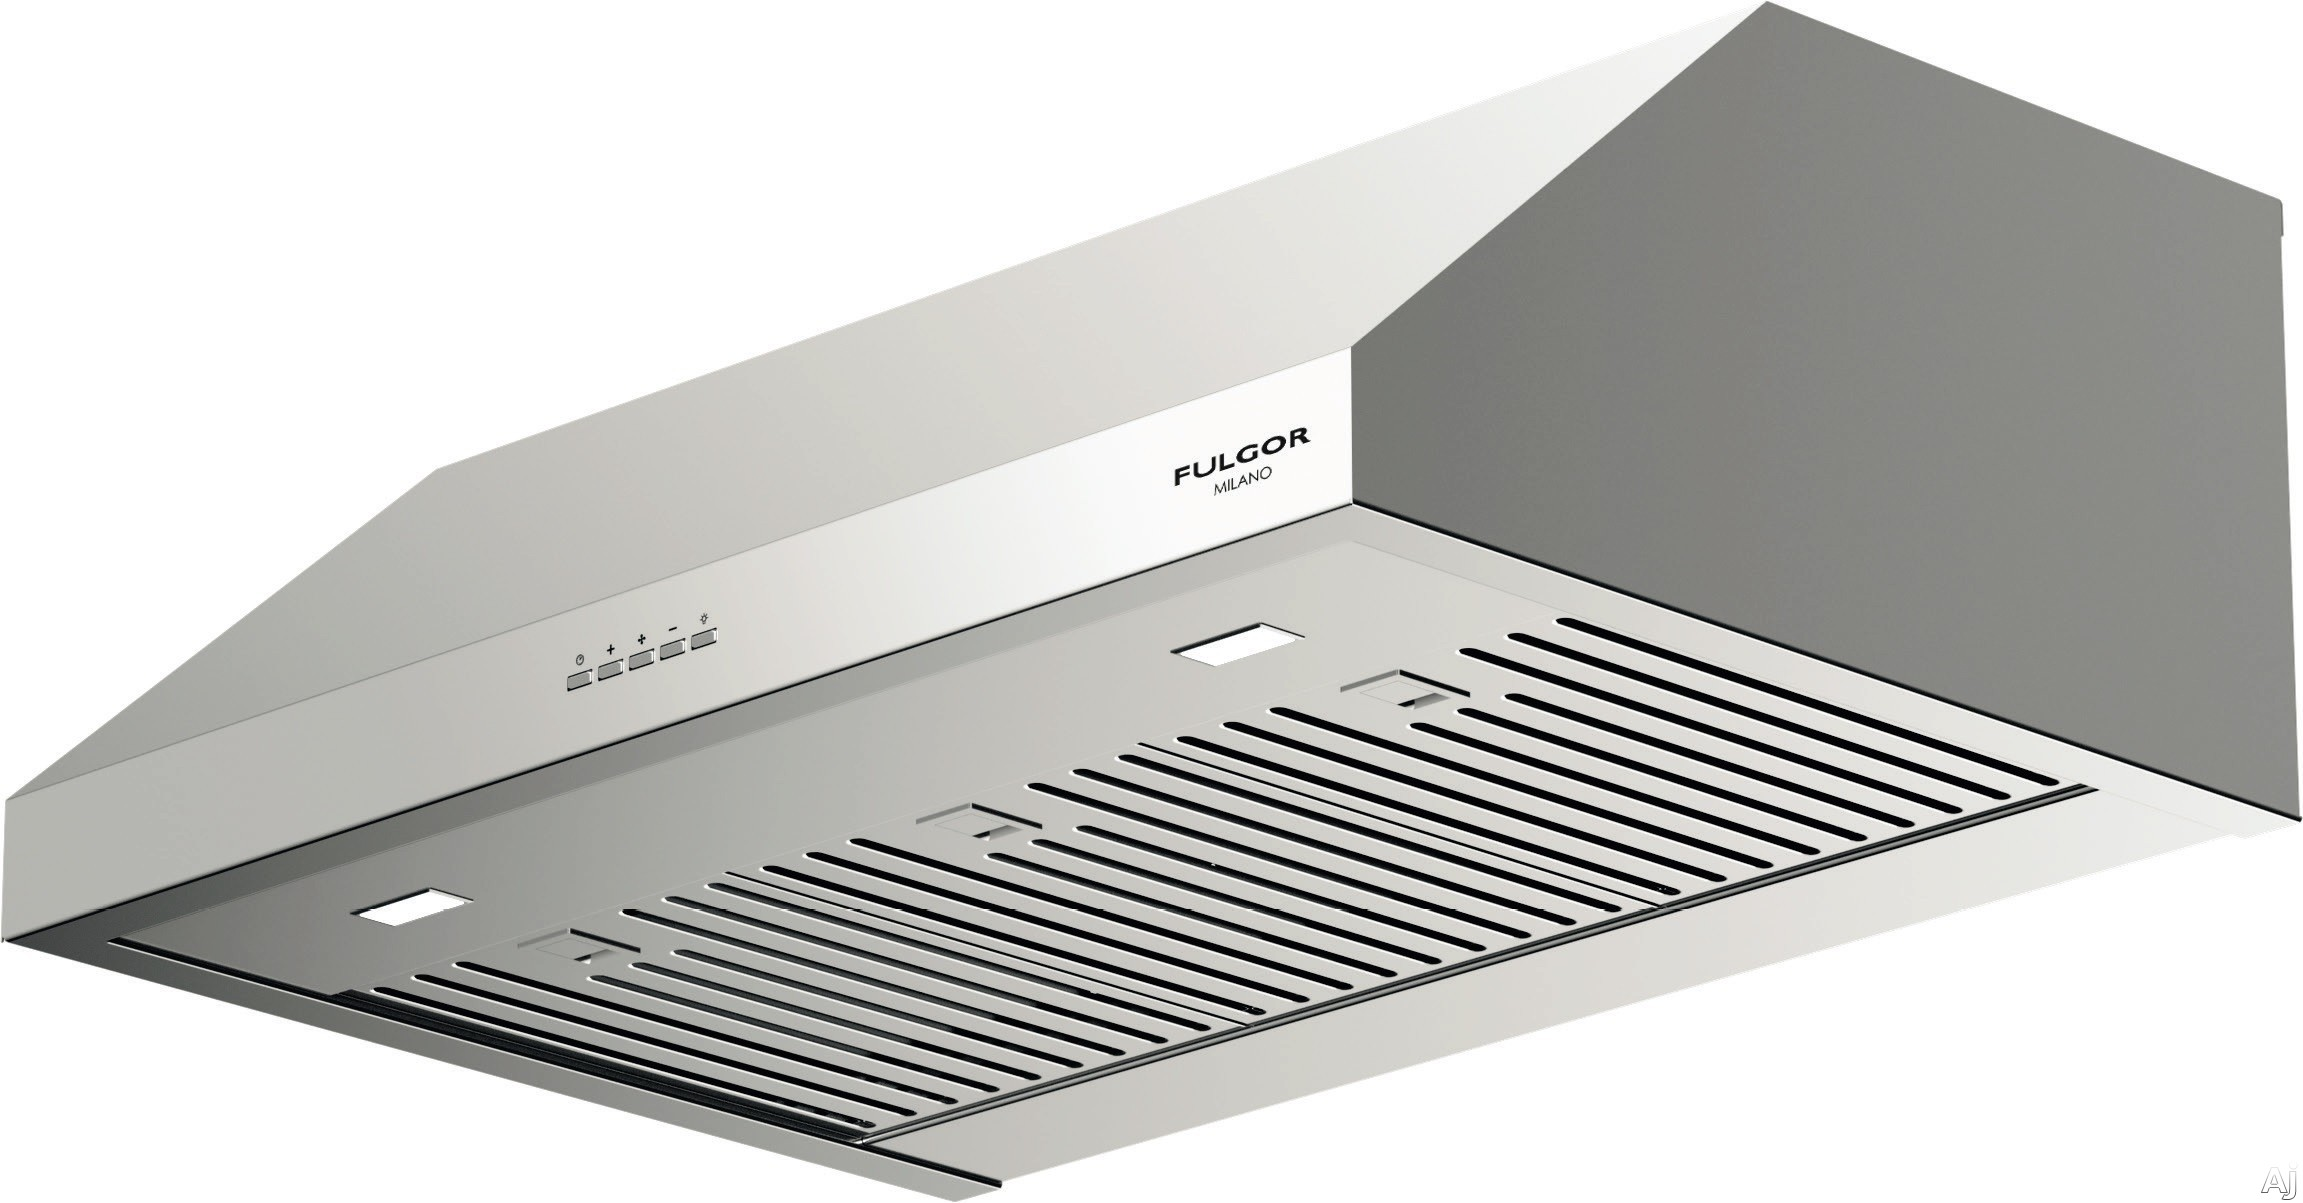 Fulgor Milano F4UC30S1 30 Inch Under Cabinet Hood with 450 CFM Internal Blower Stainless Steel Baffle Filters Mechanical Controls 4 Speed Blower Fan LED Lighting and Recirculating Options